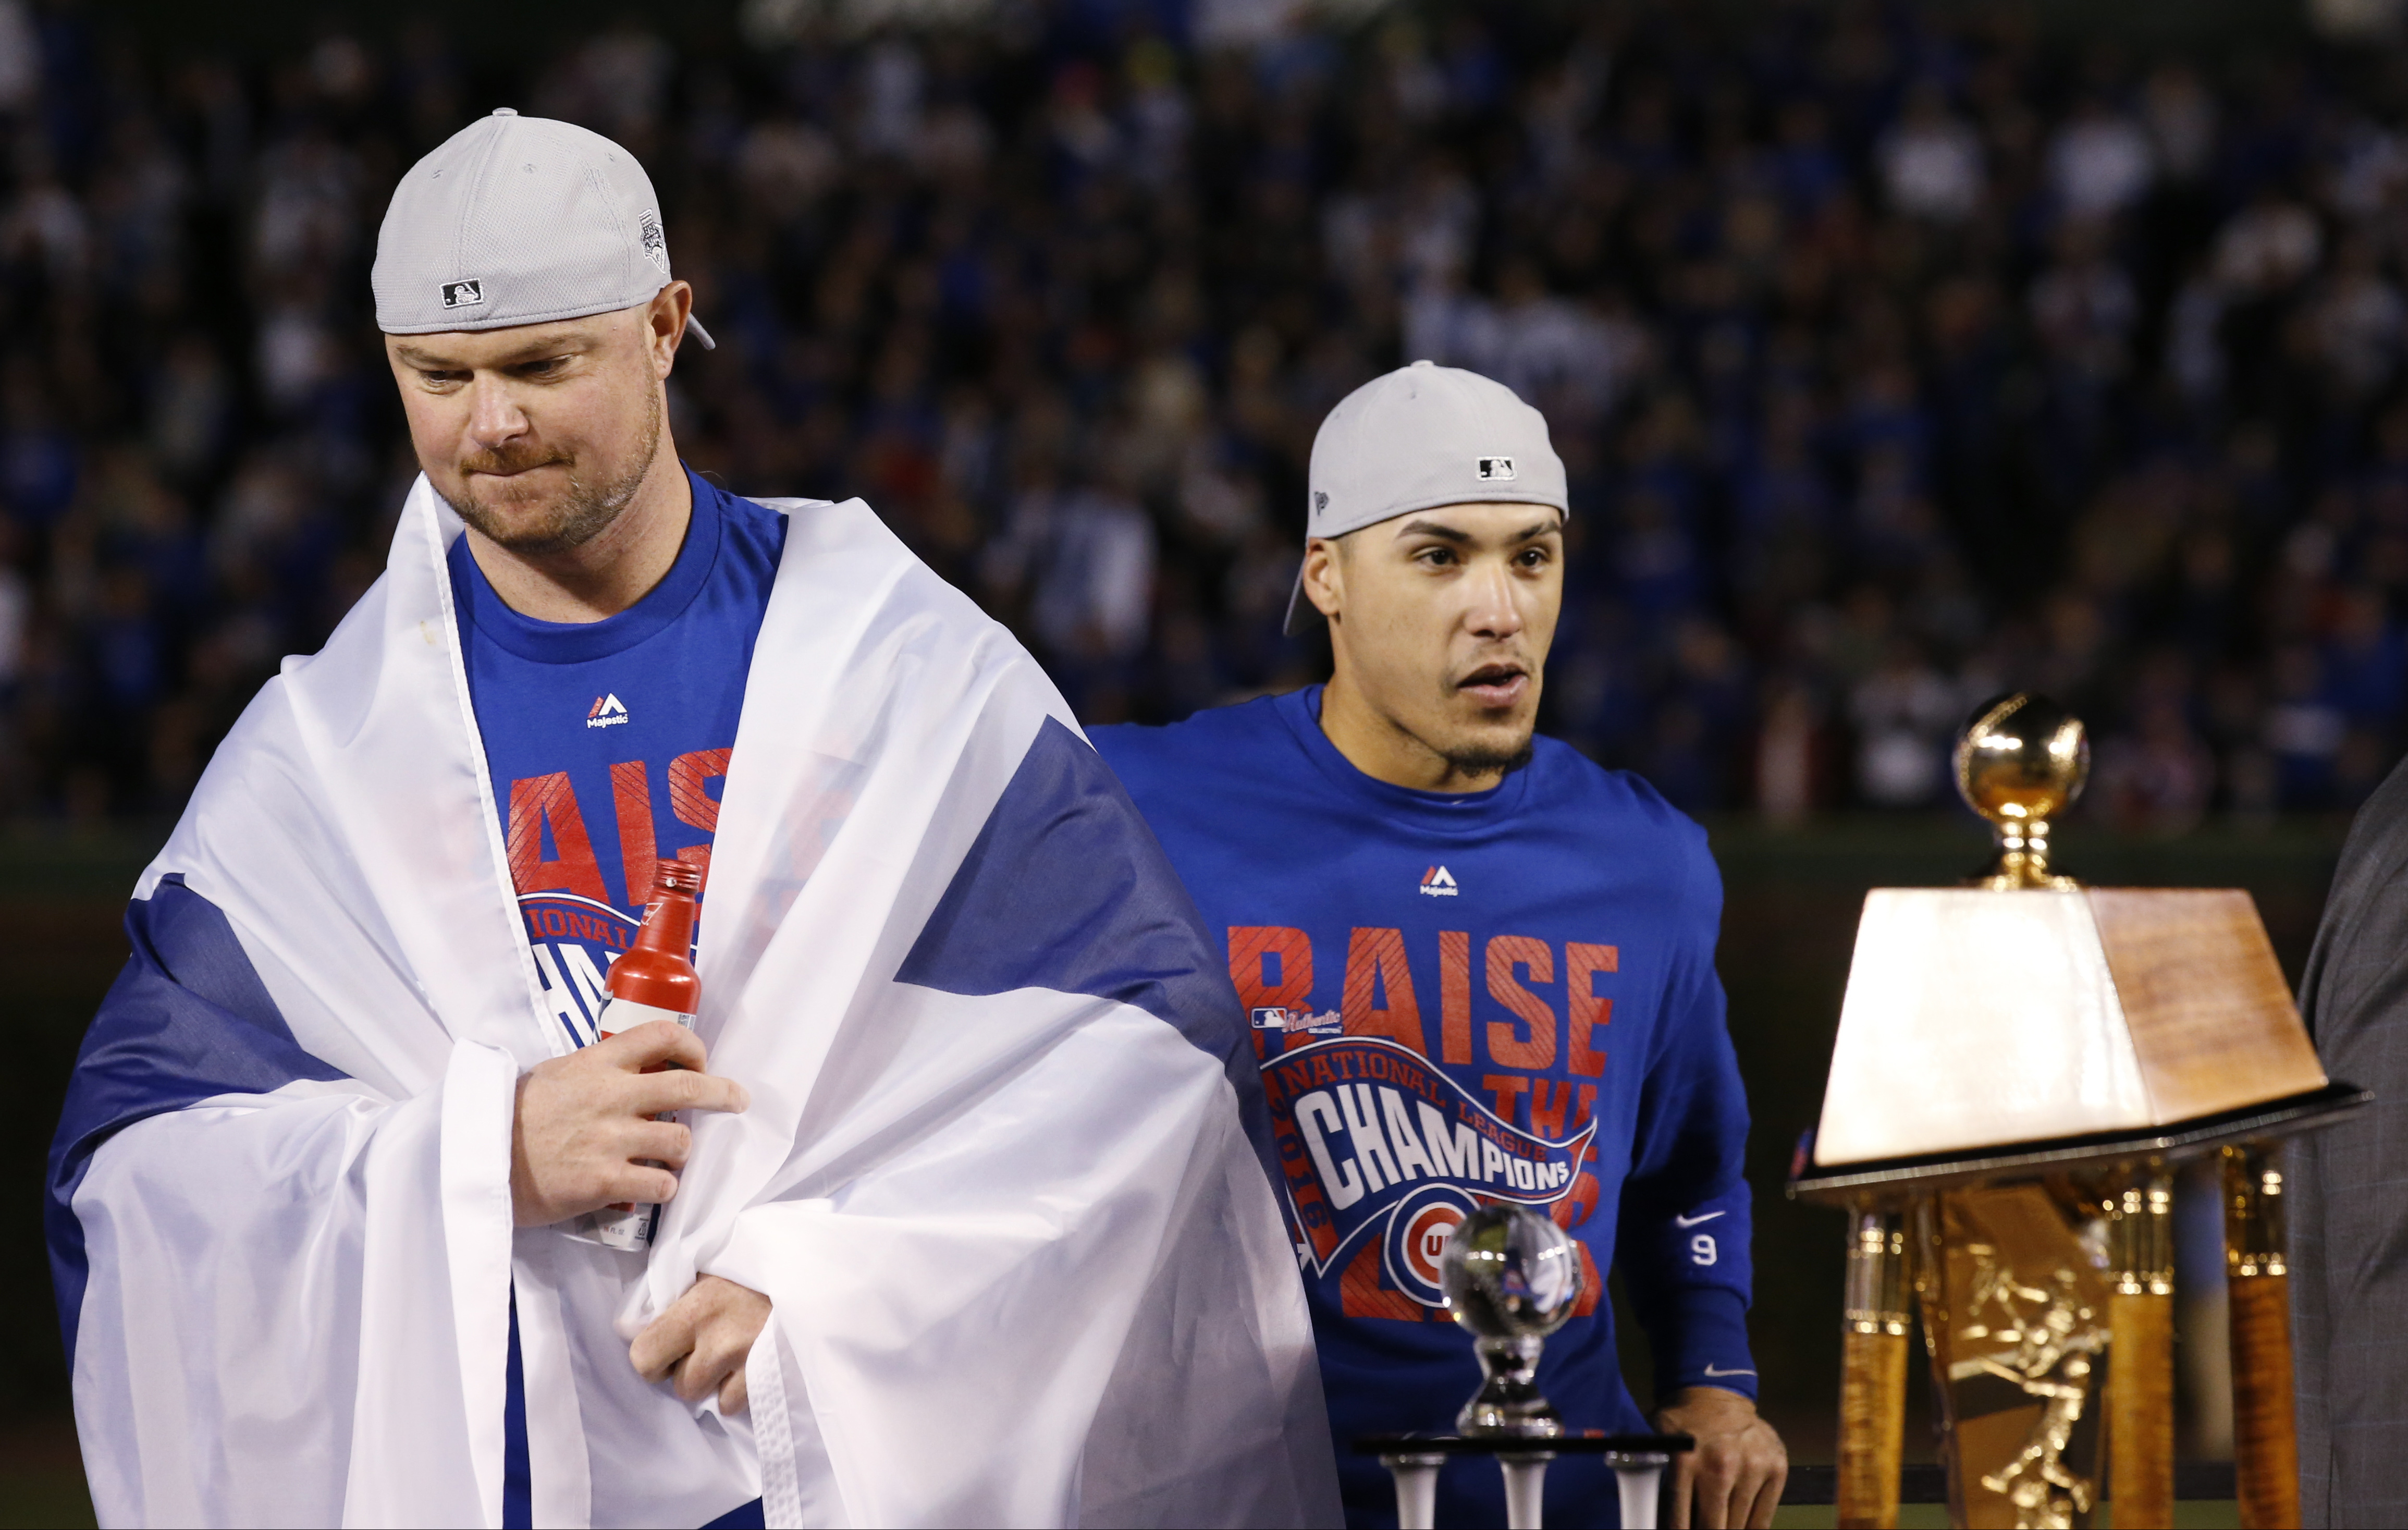 Chicago Cubs' Jon Lester, left, and Javier Baez celebrate after Game 6 of the National League baseball championship series against the Los Angeles Dodgers, Saturday, Oct. 22, 2016, in Chicago. The Cubs won 5-0 to win the series and advance to the World Se